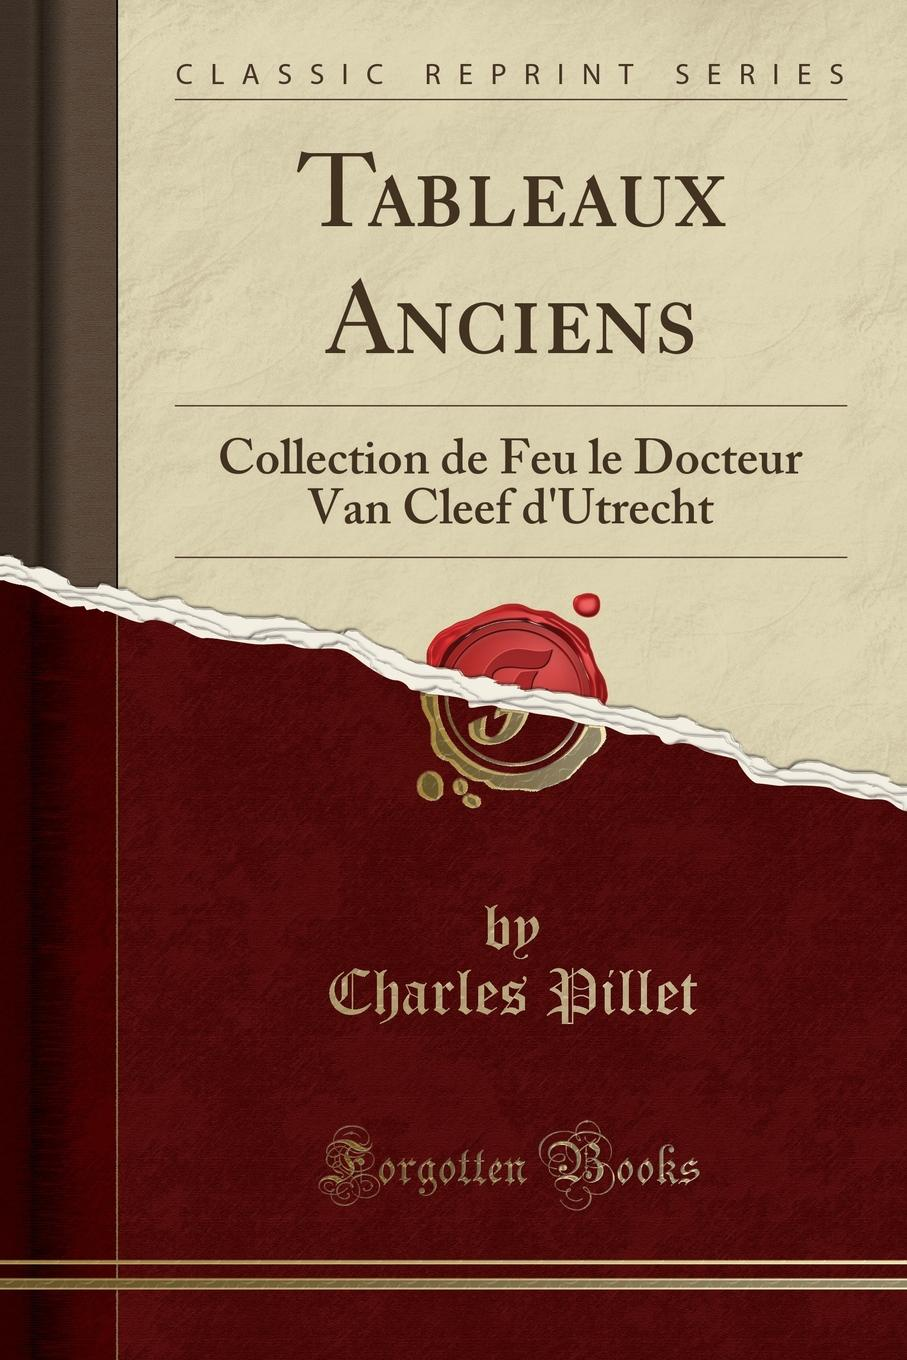 Charles Pillet Tableaux Anciens. Collection de Feu le Docteur Van Cleef d.Utrecht (Classic Reprint) in praise of hands the art of fine jewelry at van cleef